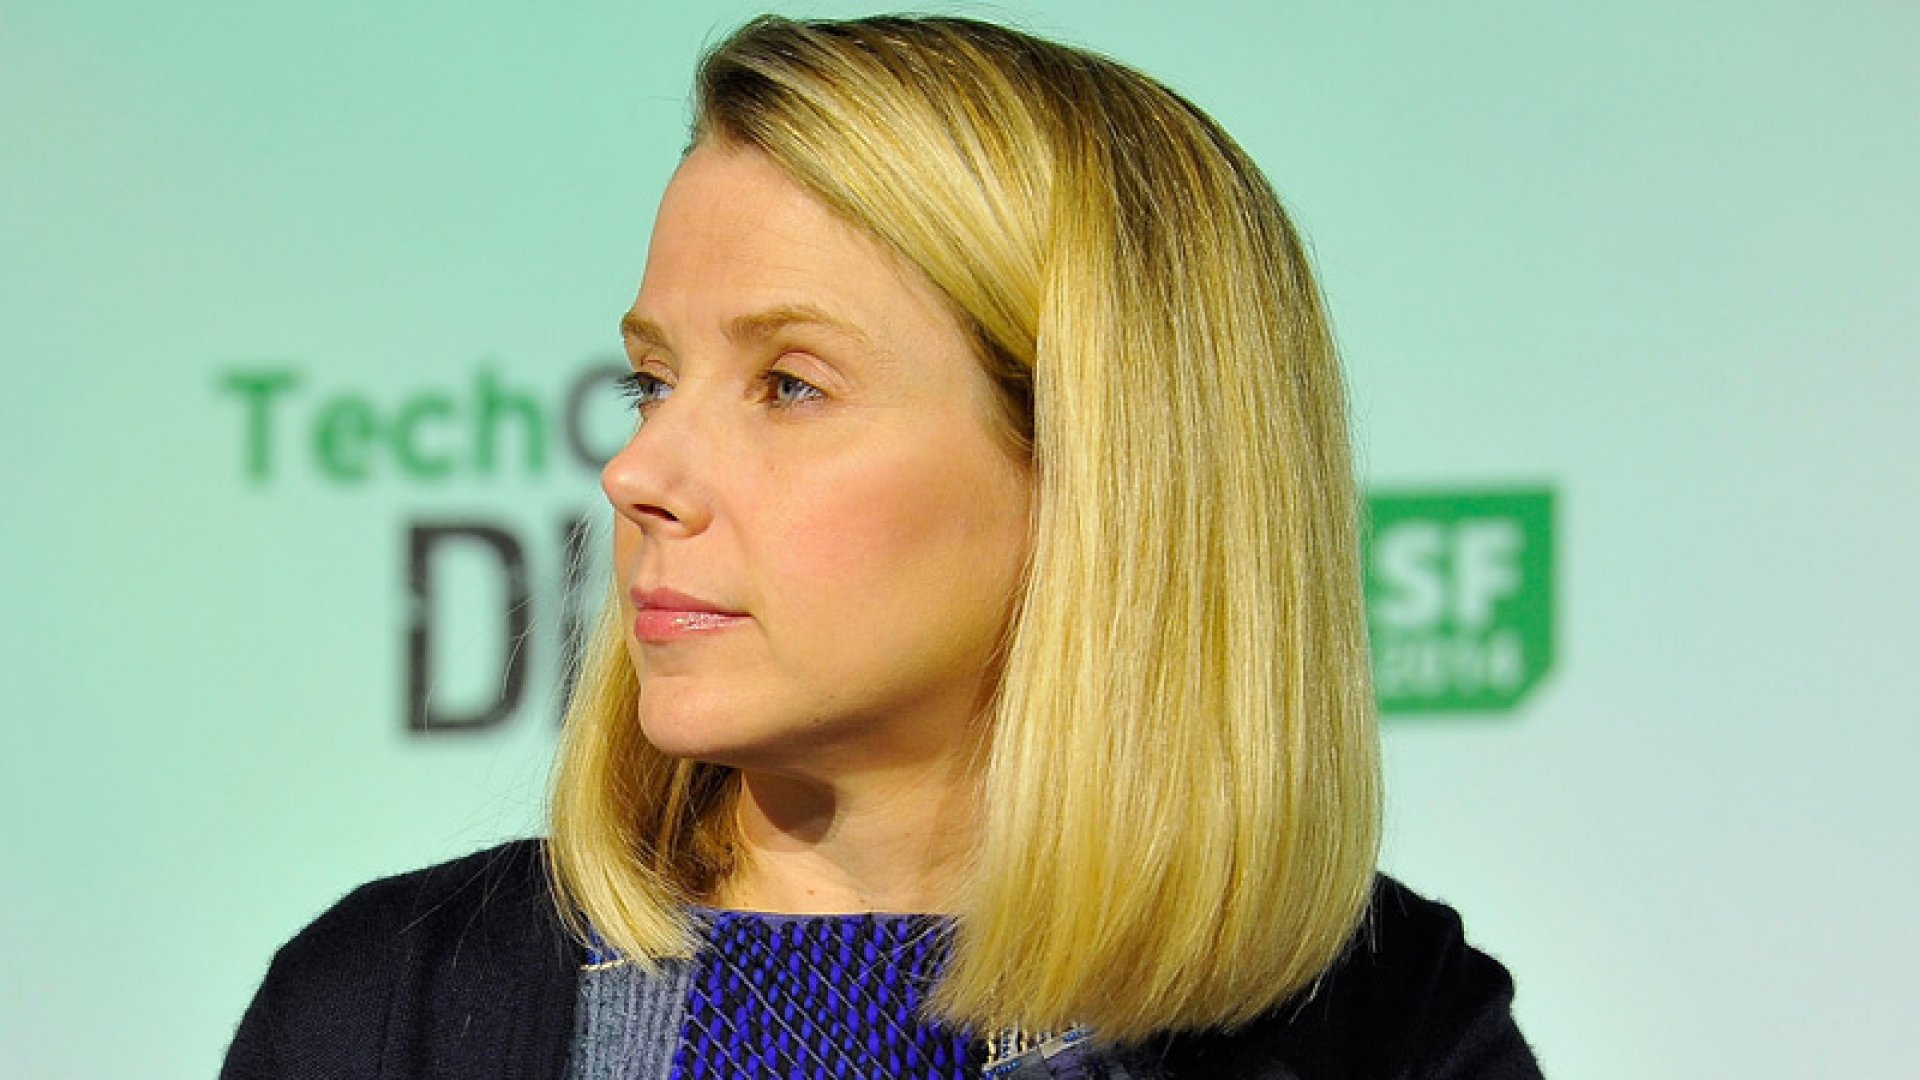 Marissa Mayer Will Cut 200 Jobs at Yahoo as the Company Pulls Out of China